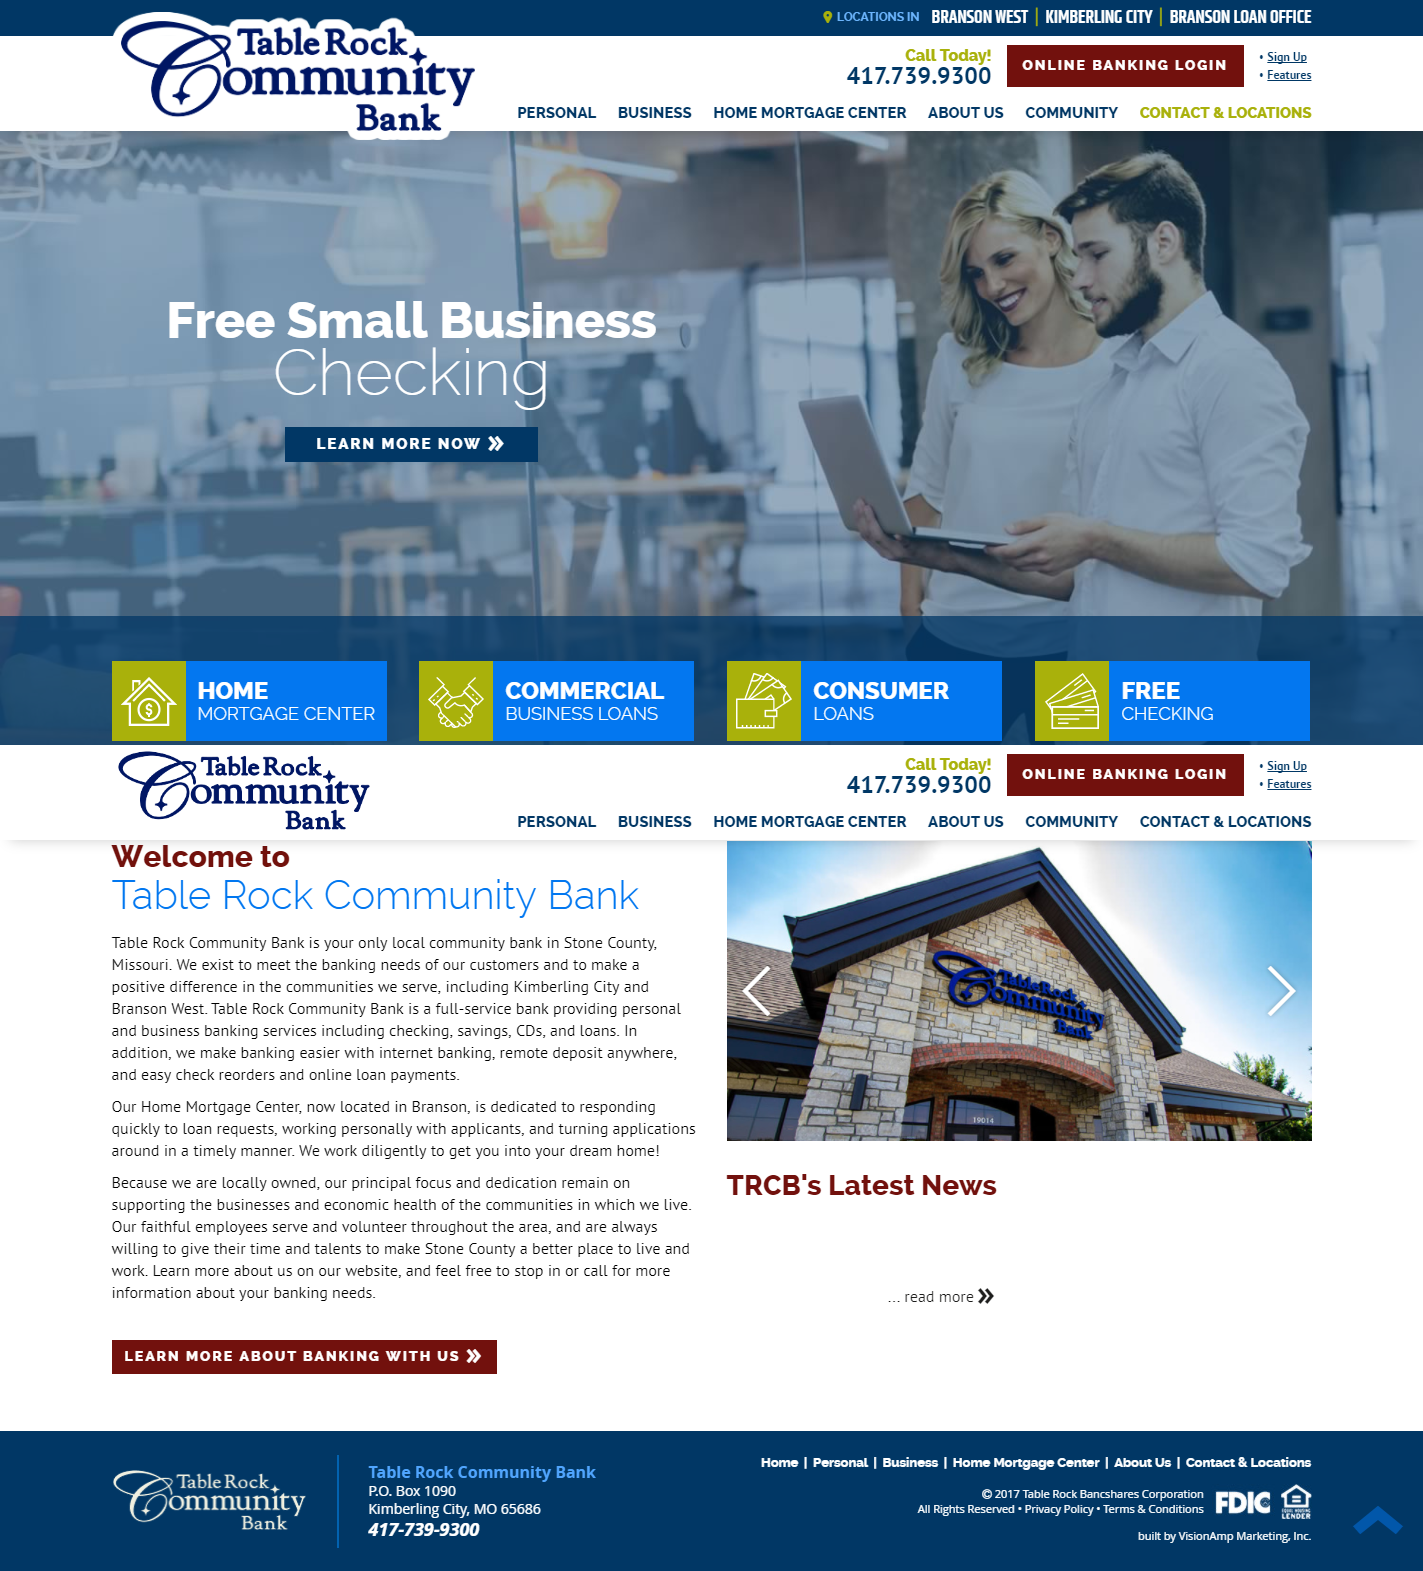 Table Rock Community Bank Full Web Design Image